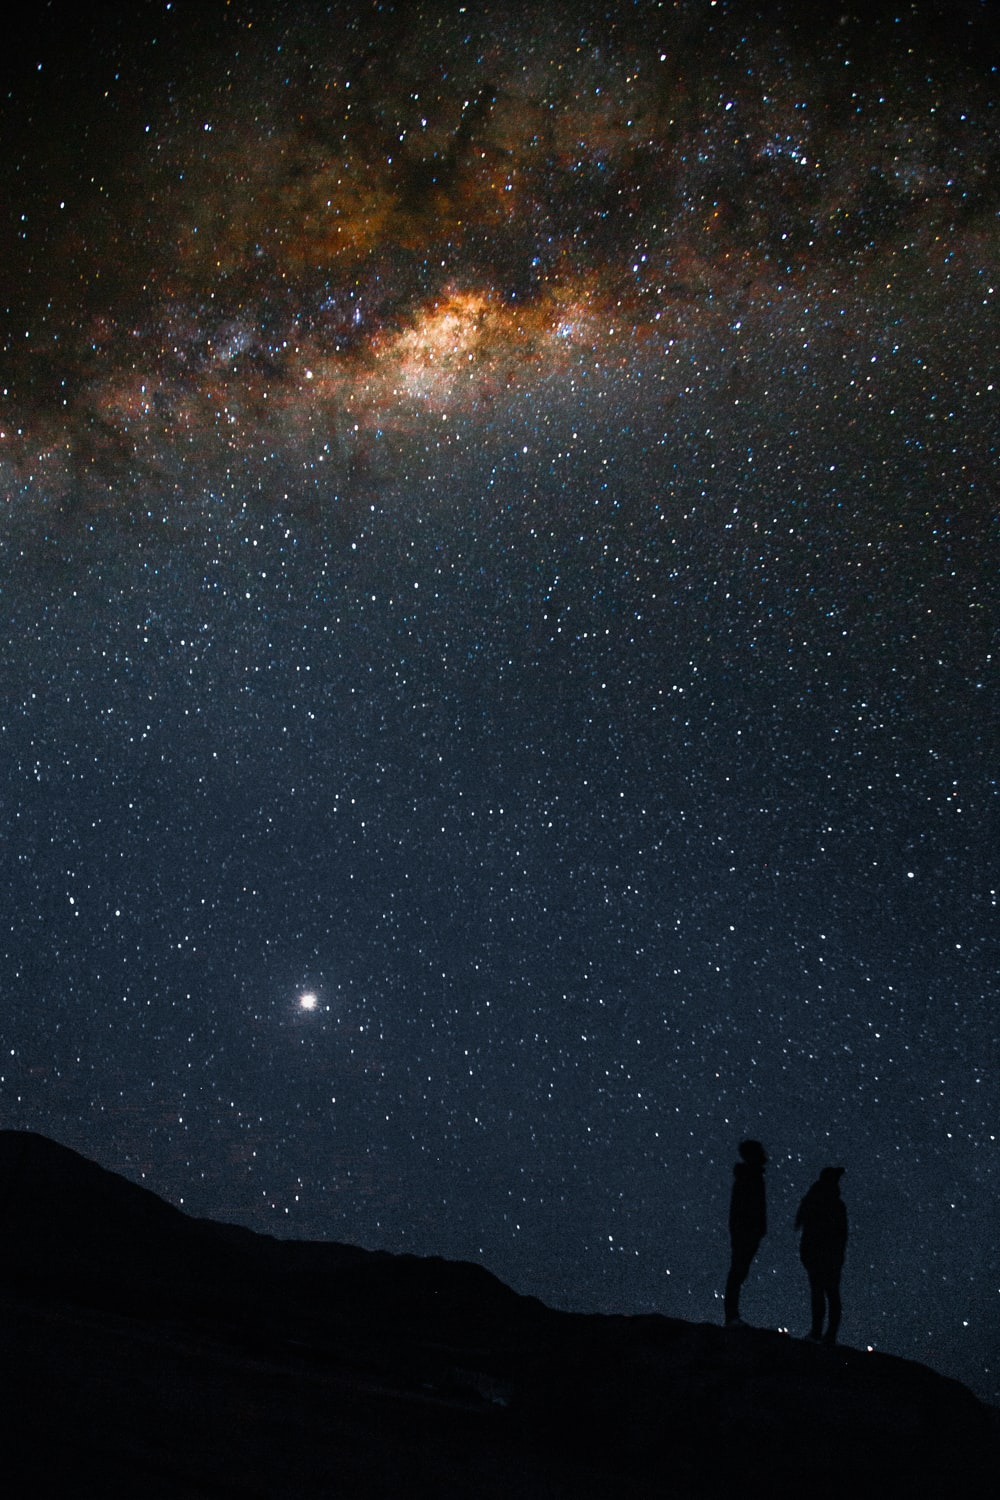 silhouette of two person standing under Milky Way sky during nighttime